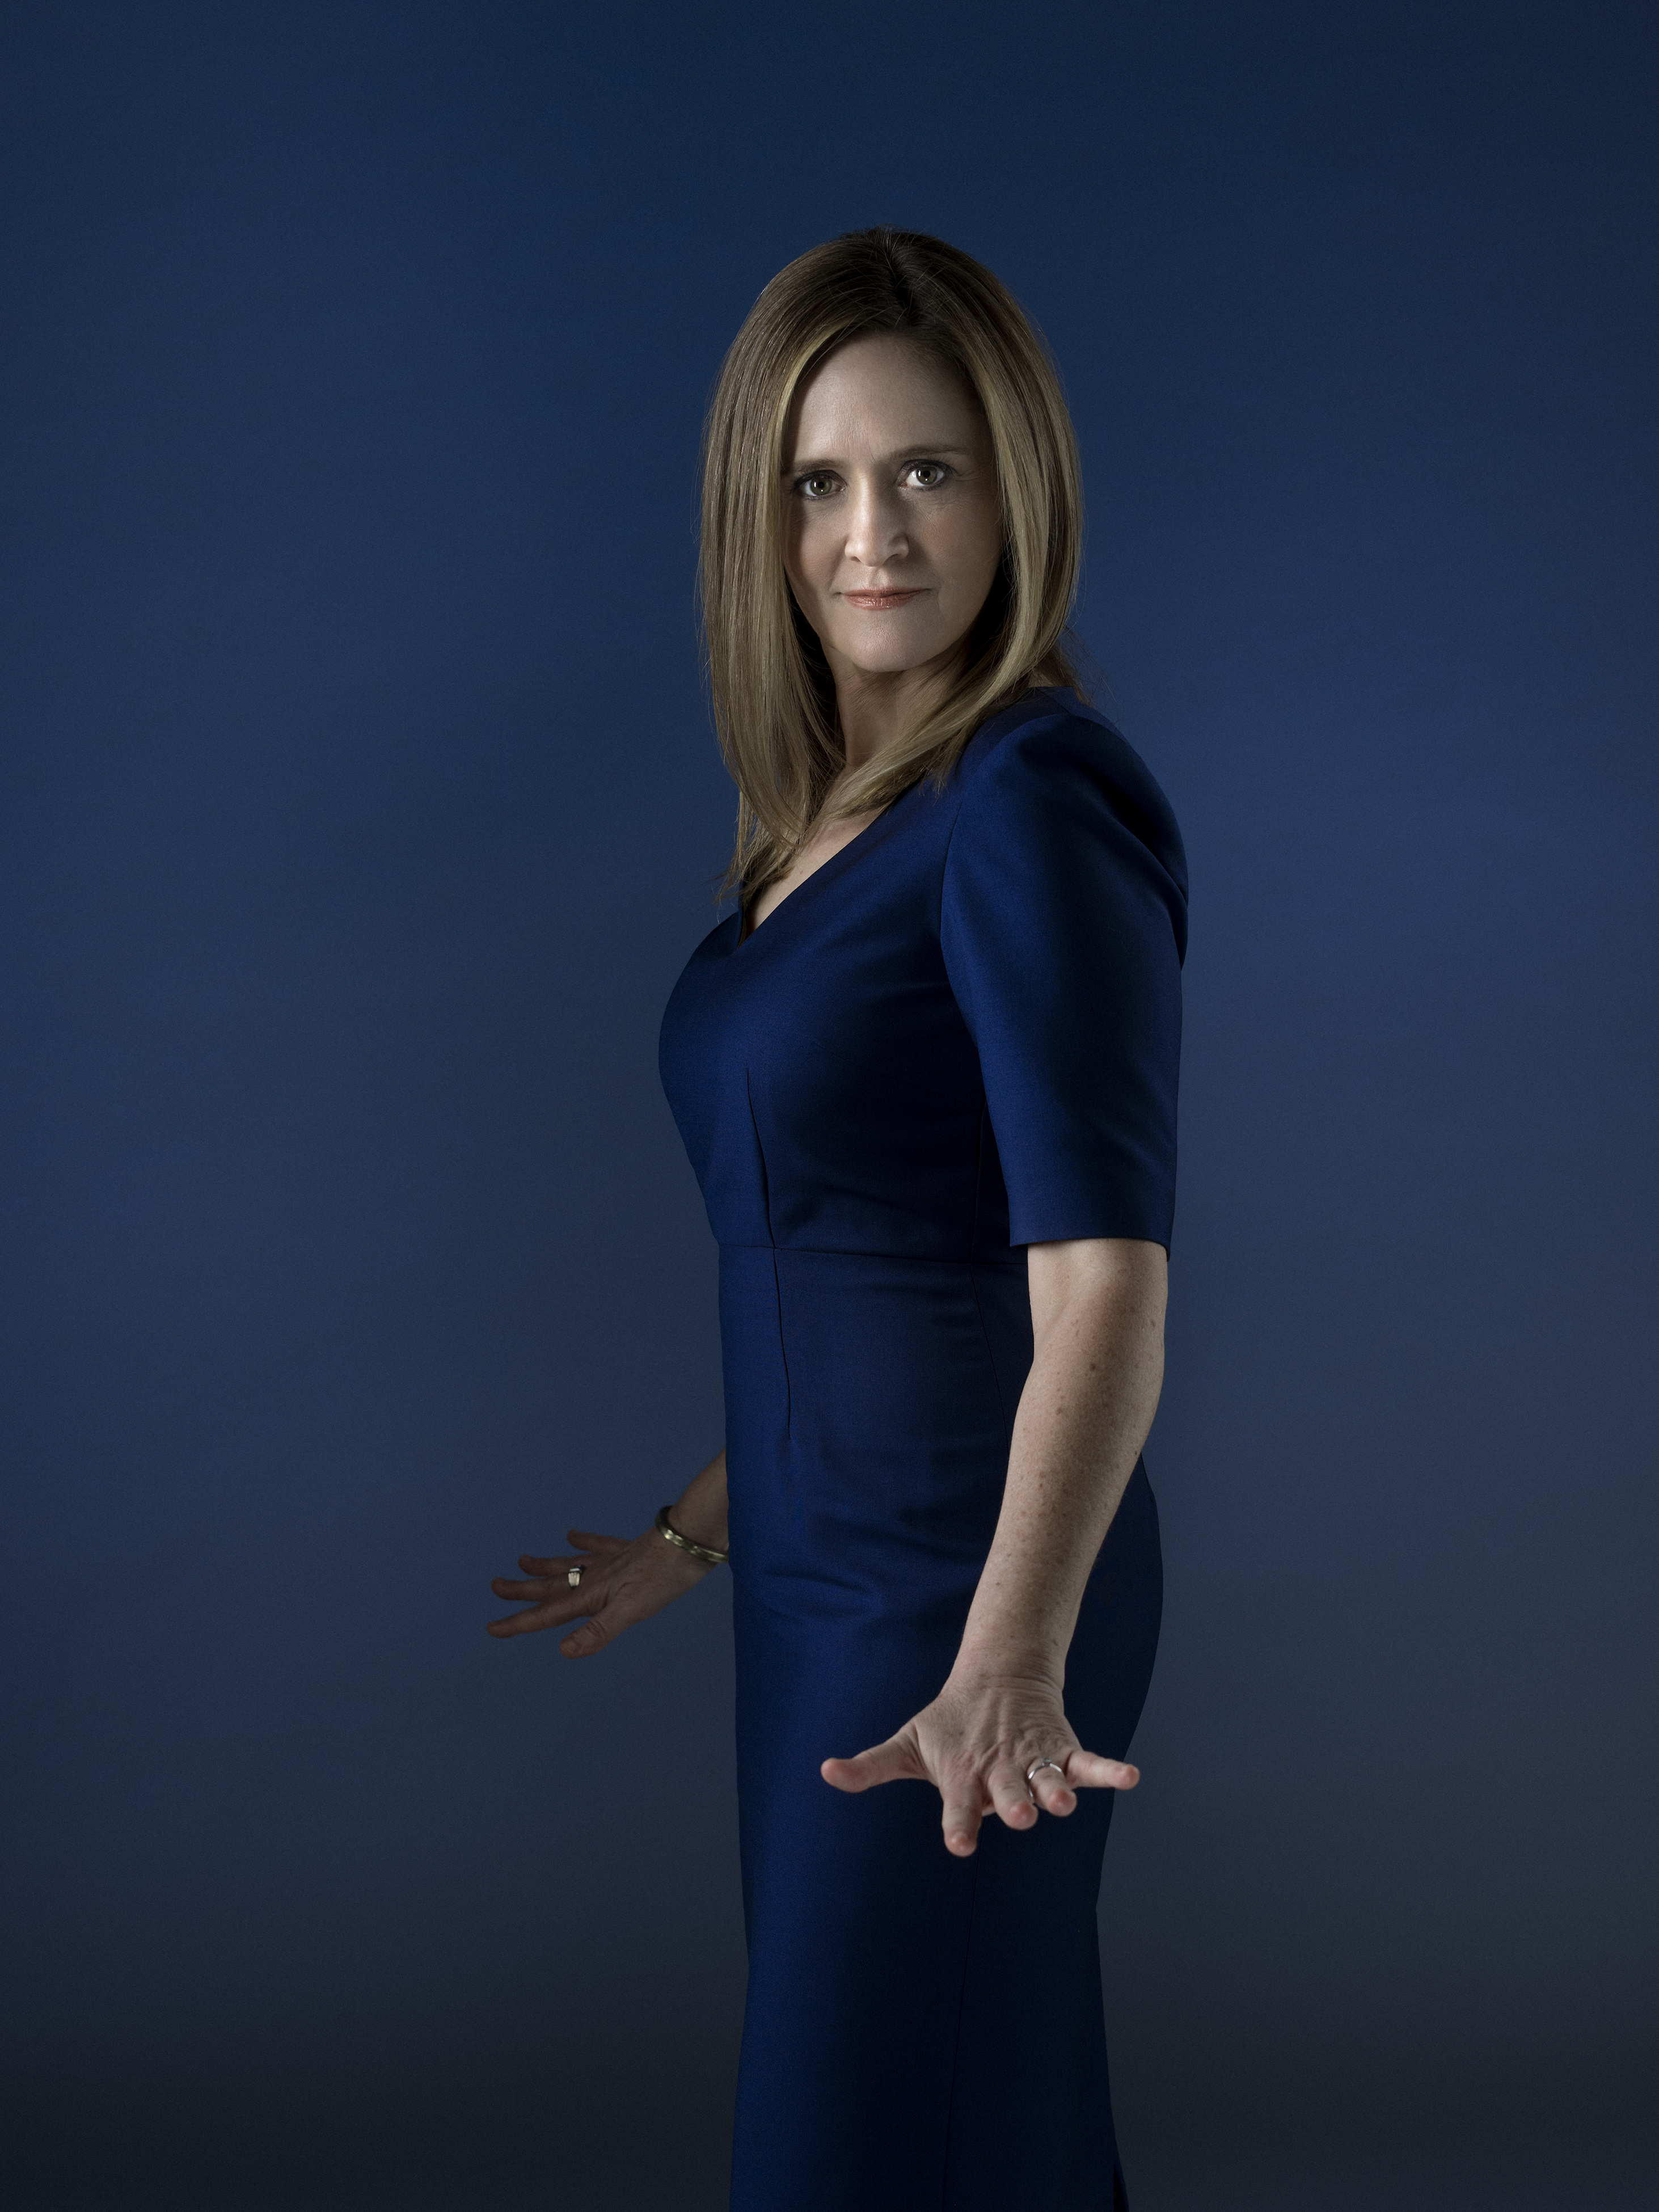 Bringing 'a hot poker of comedy': Samantha Bee on 'Full Frontal ...